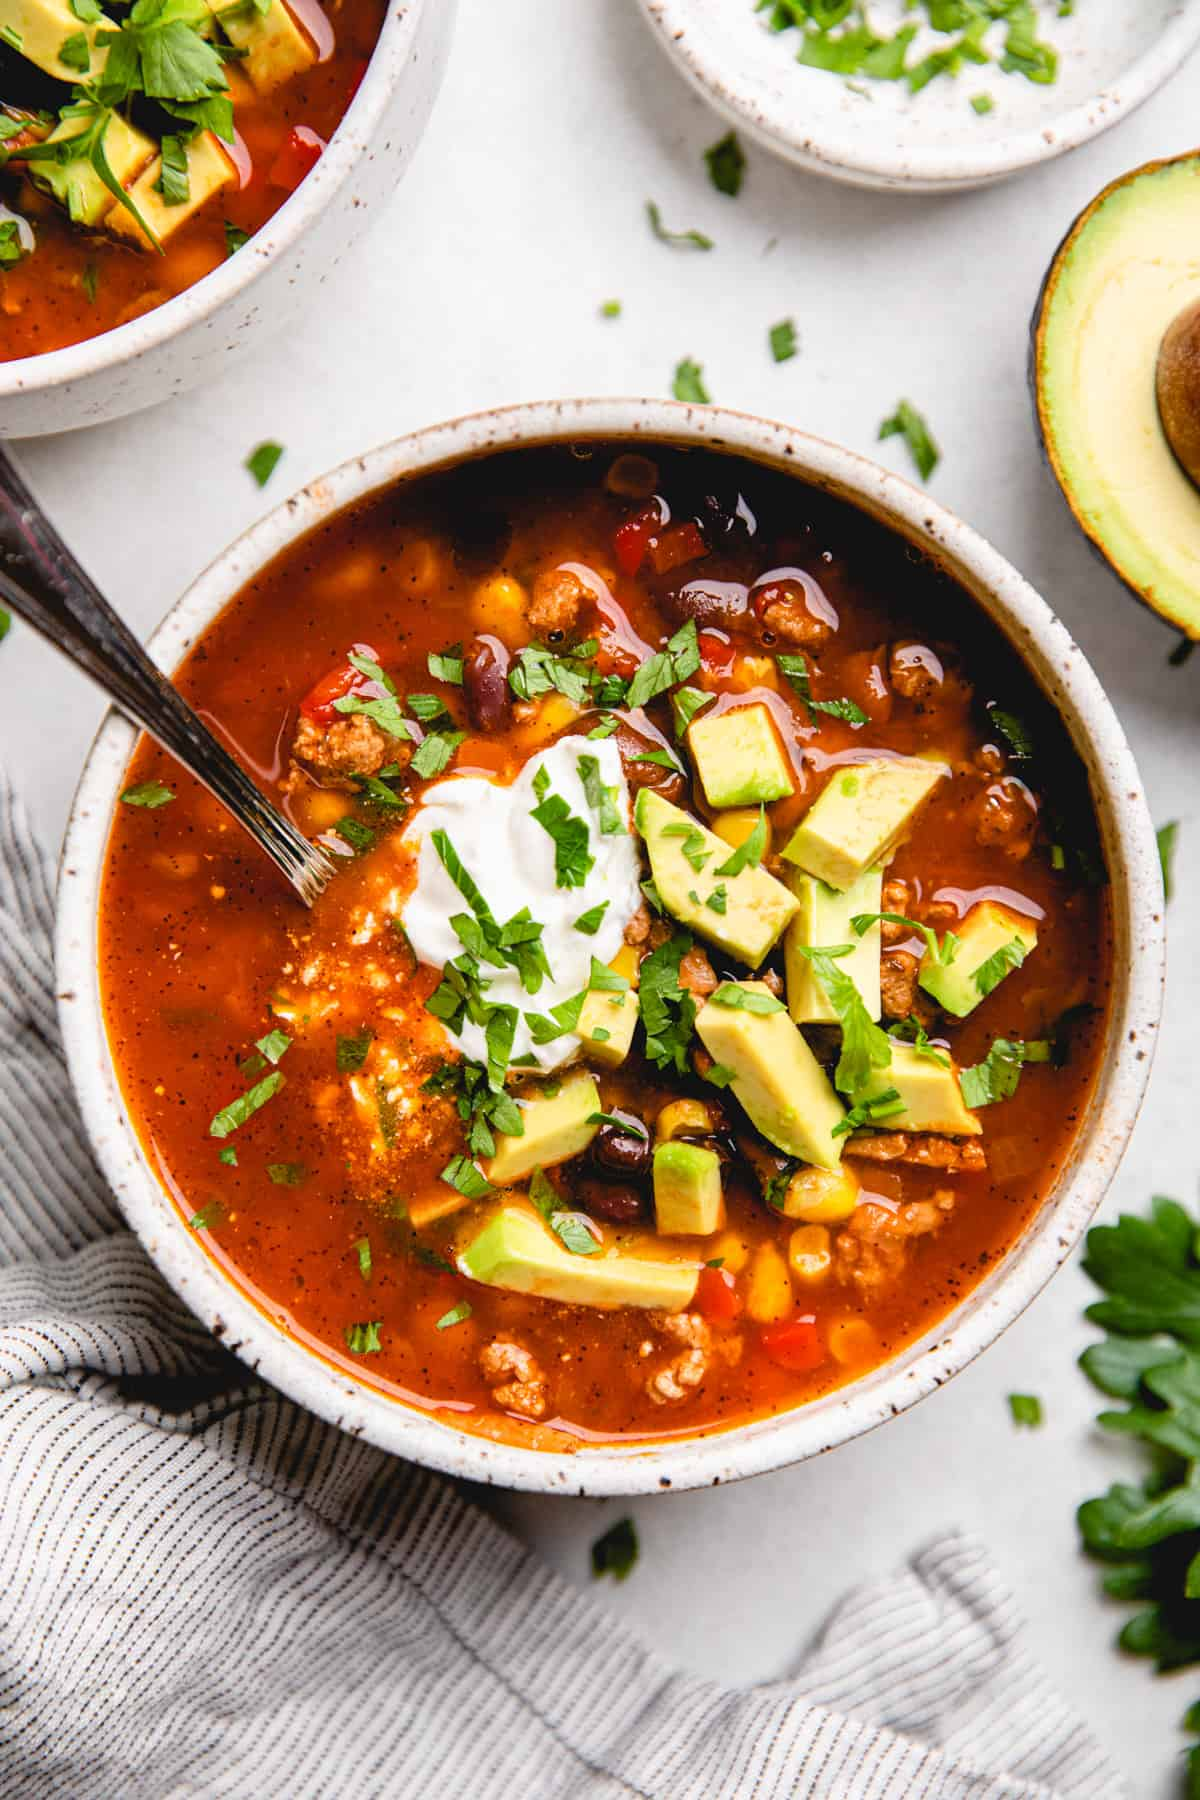 Taco Soup, topped with sour cream, avocado, and cilantro, in a white bowl.